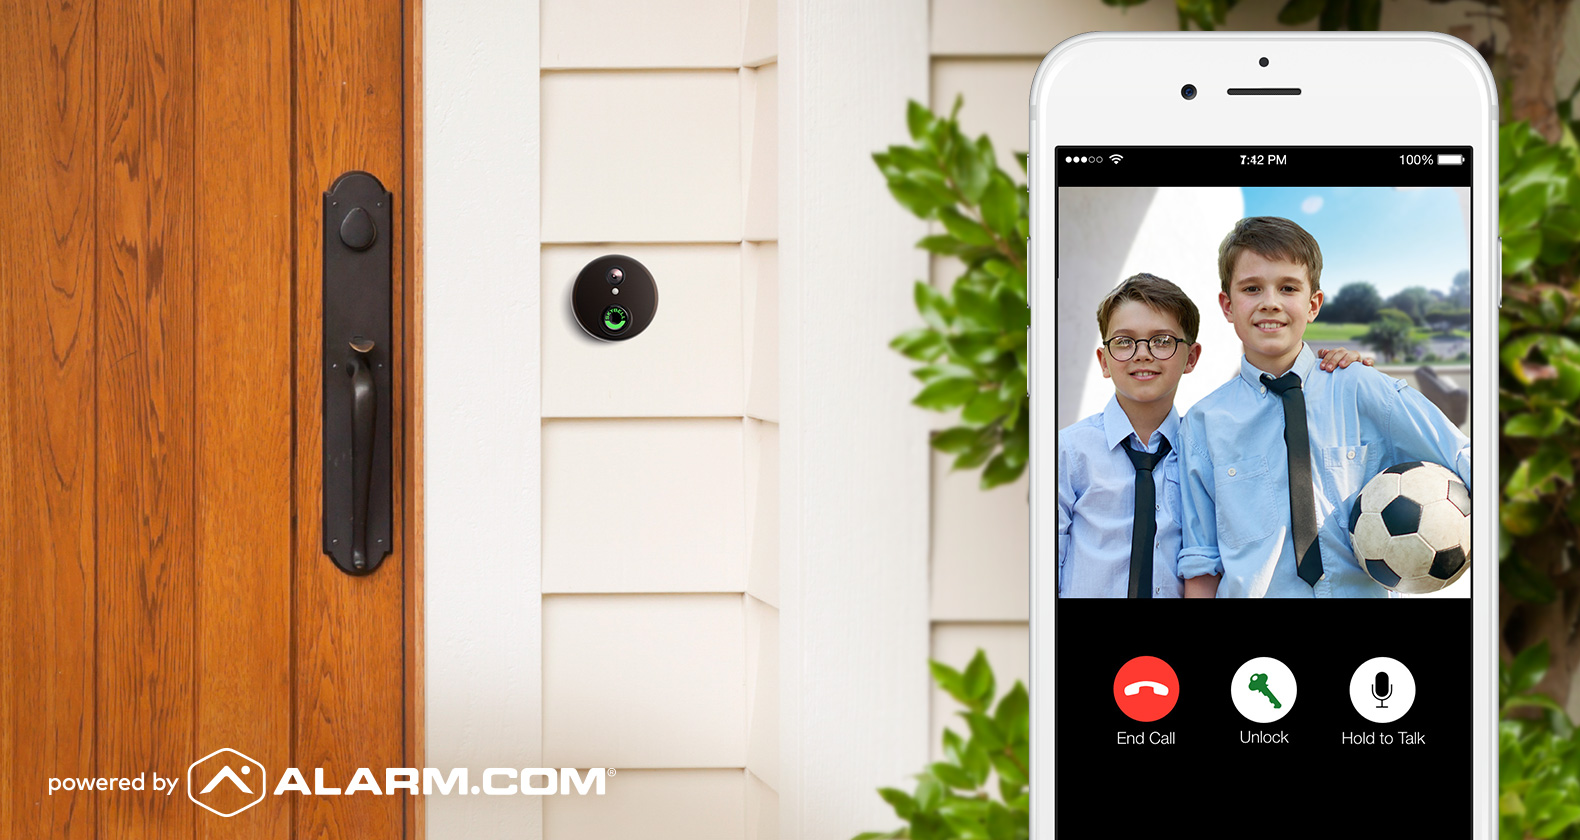 SkyBell Video Doorbell - Houston Home Security